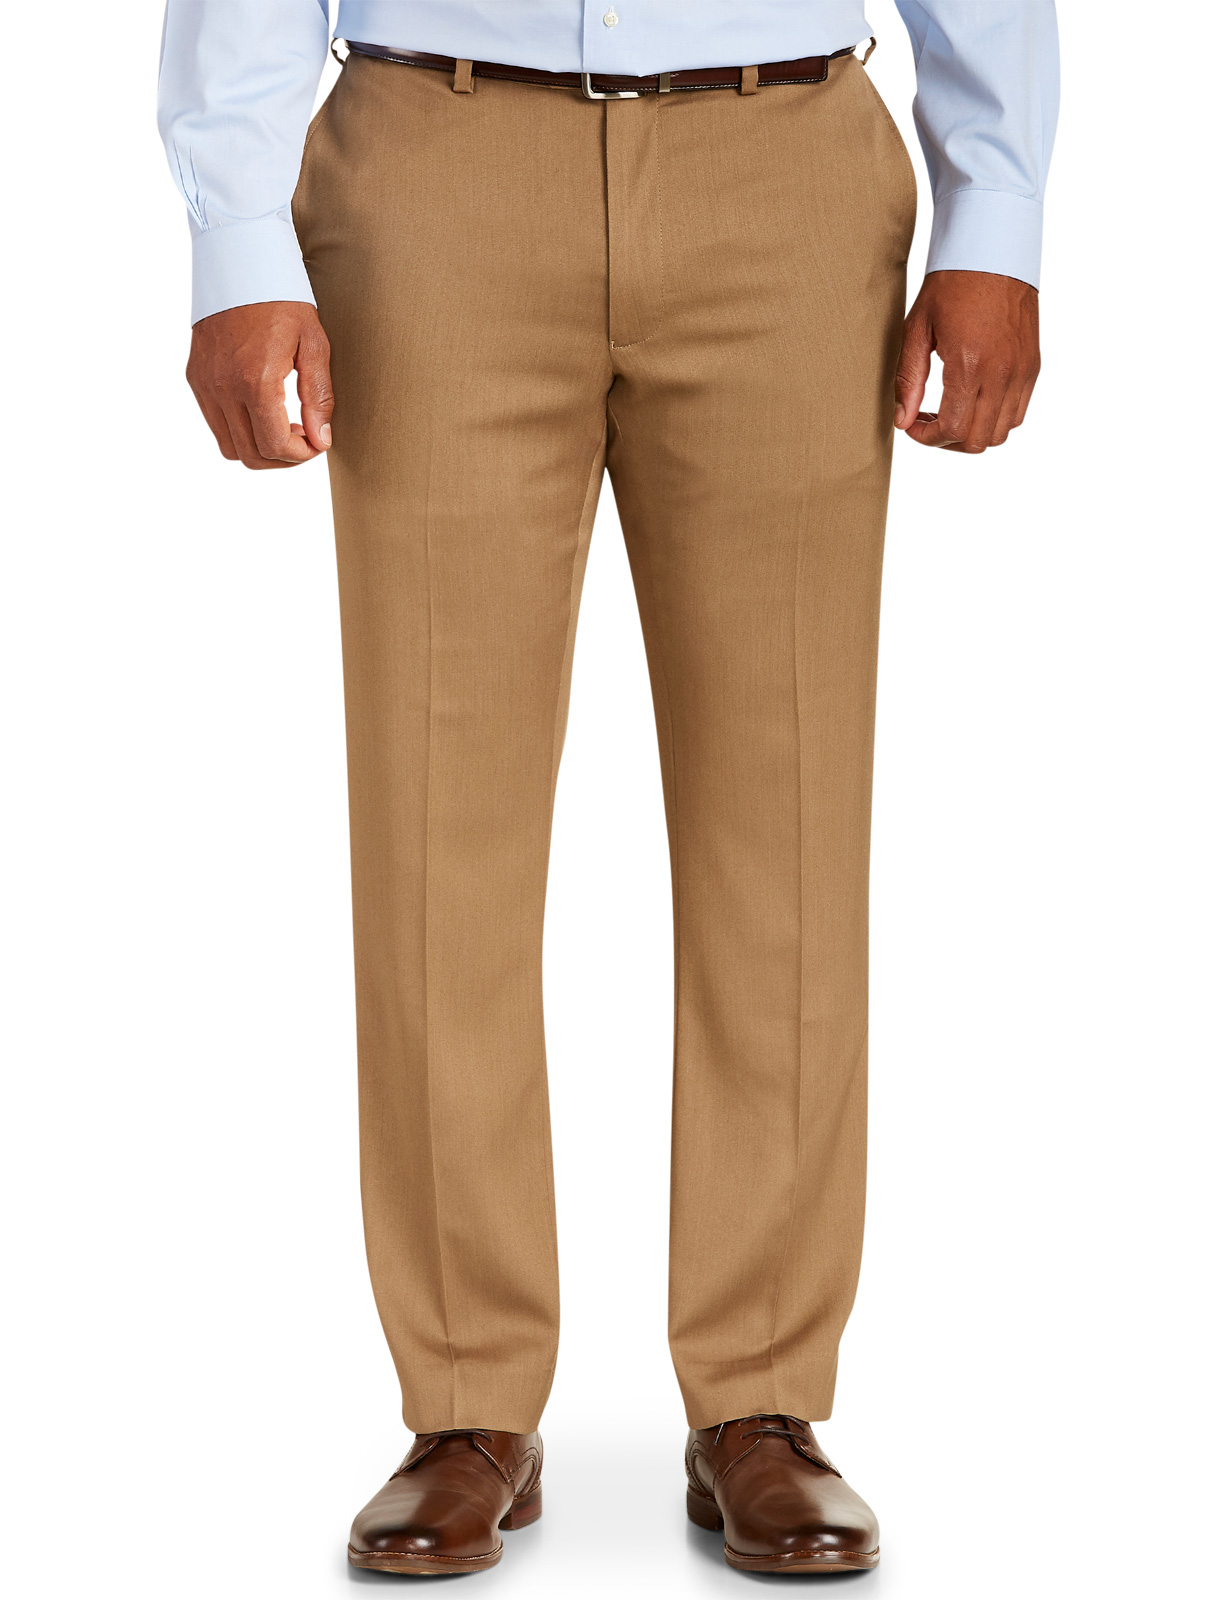 Men's Big & Tall Gold Series Perfect Fit Waist-Relaxer Suit Pants – Unhemmed